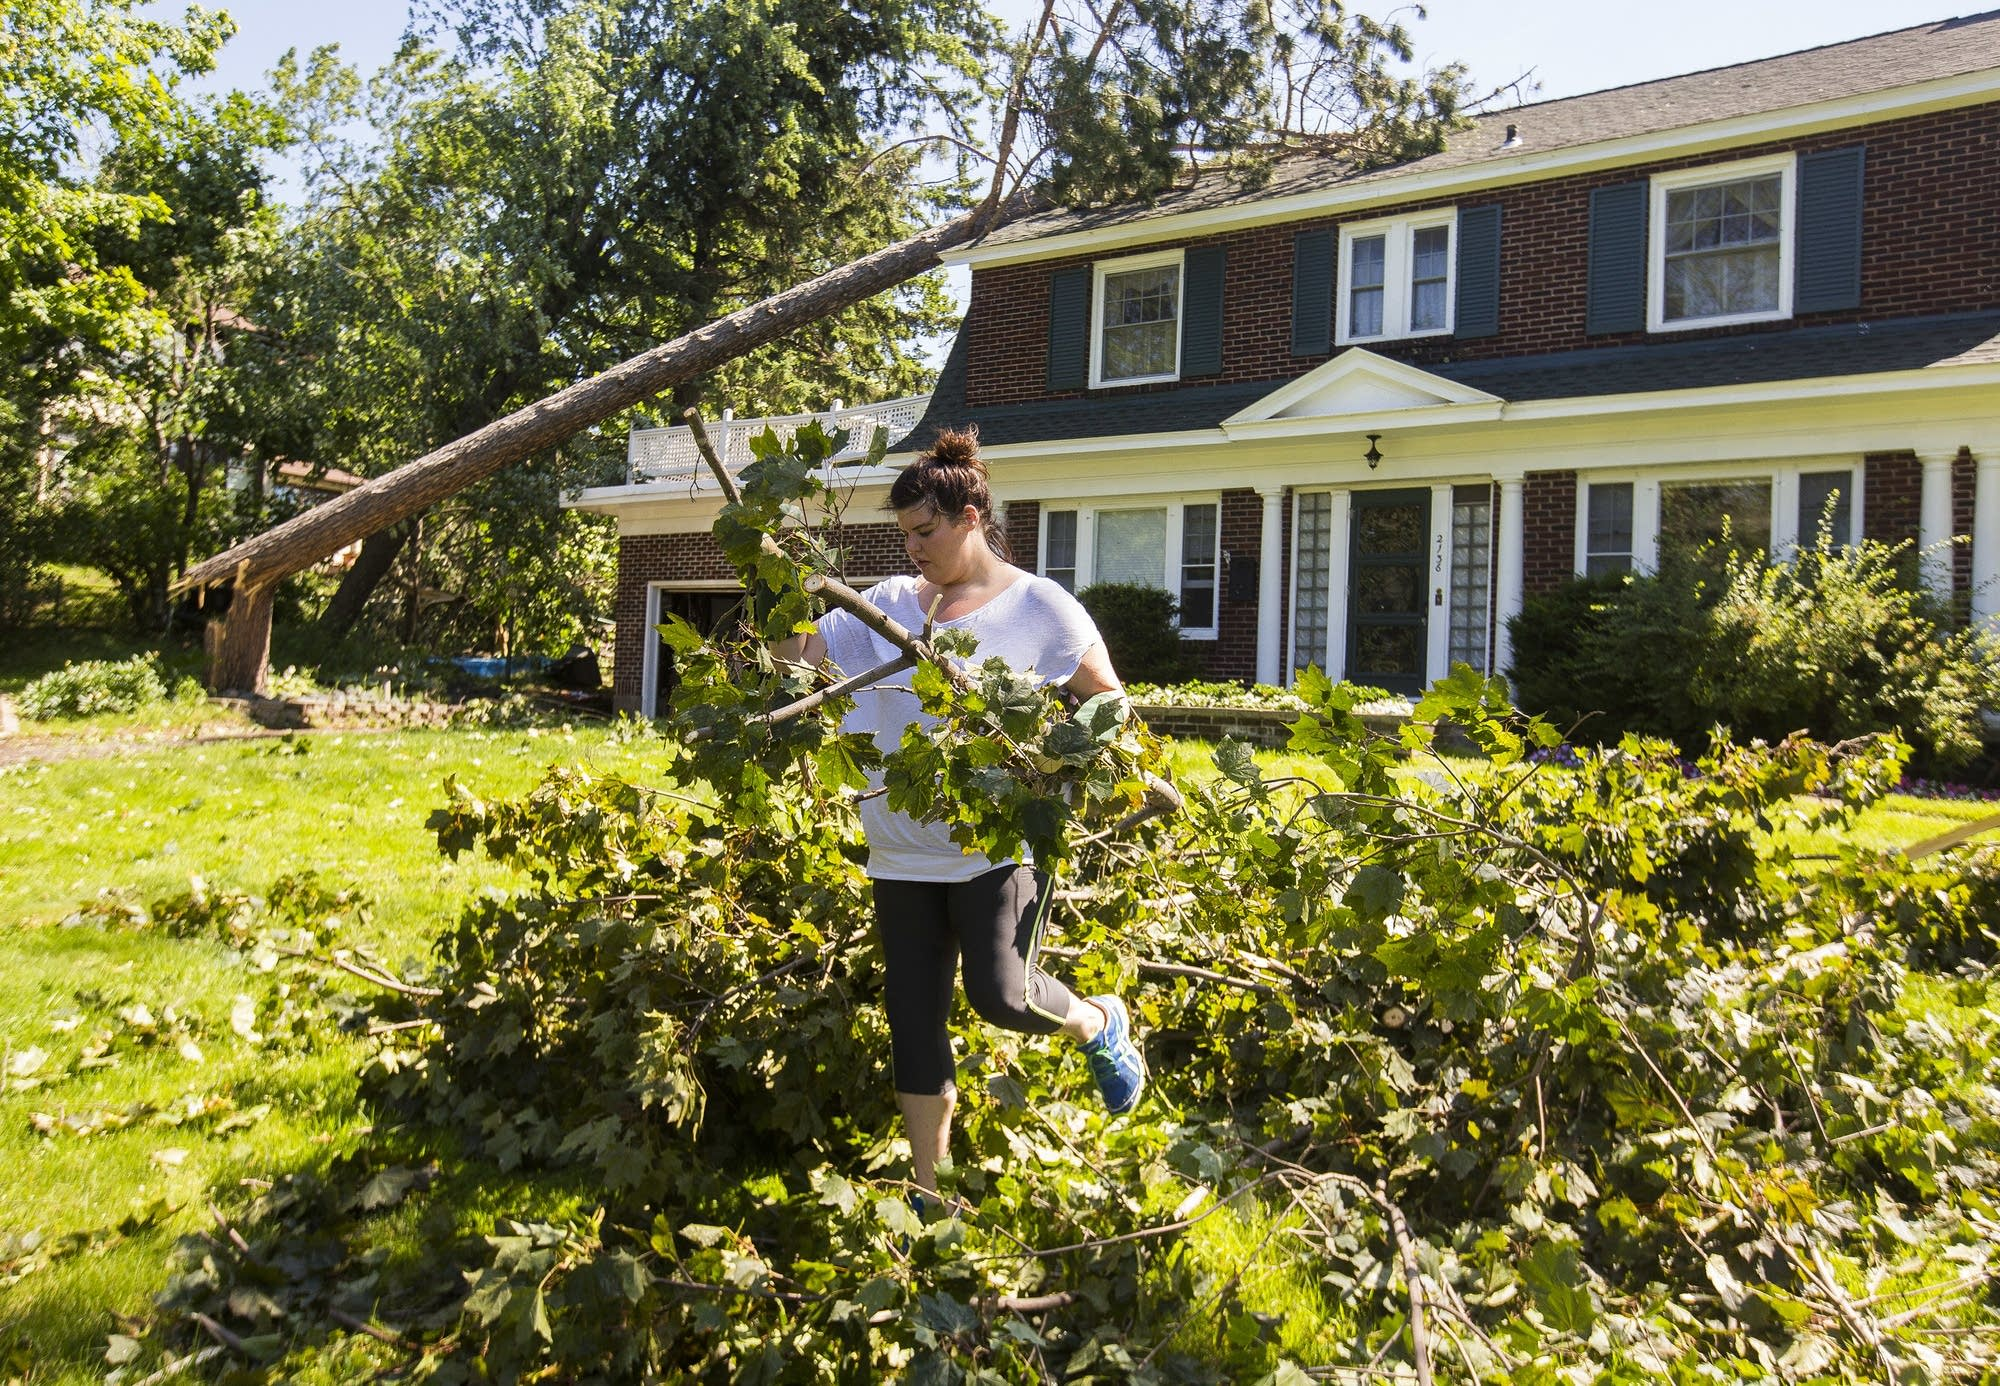 Annalise Peterson carries a downed branch